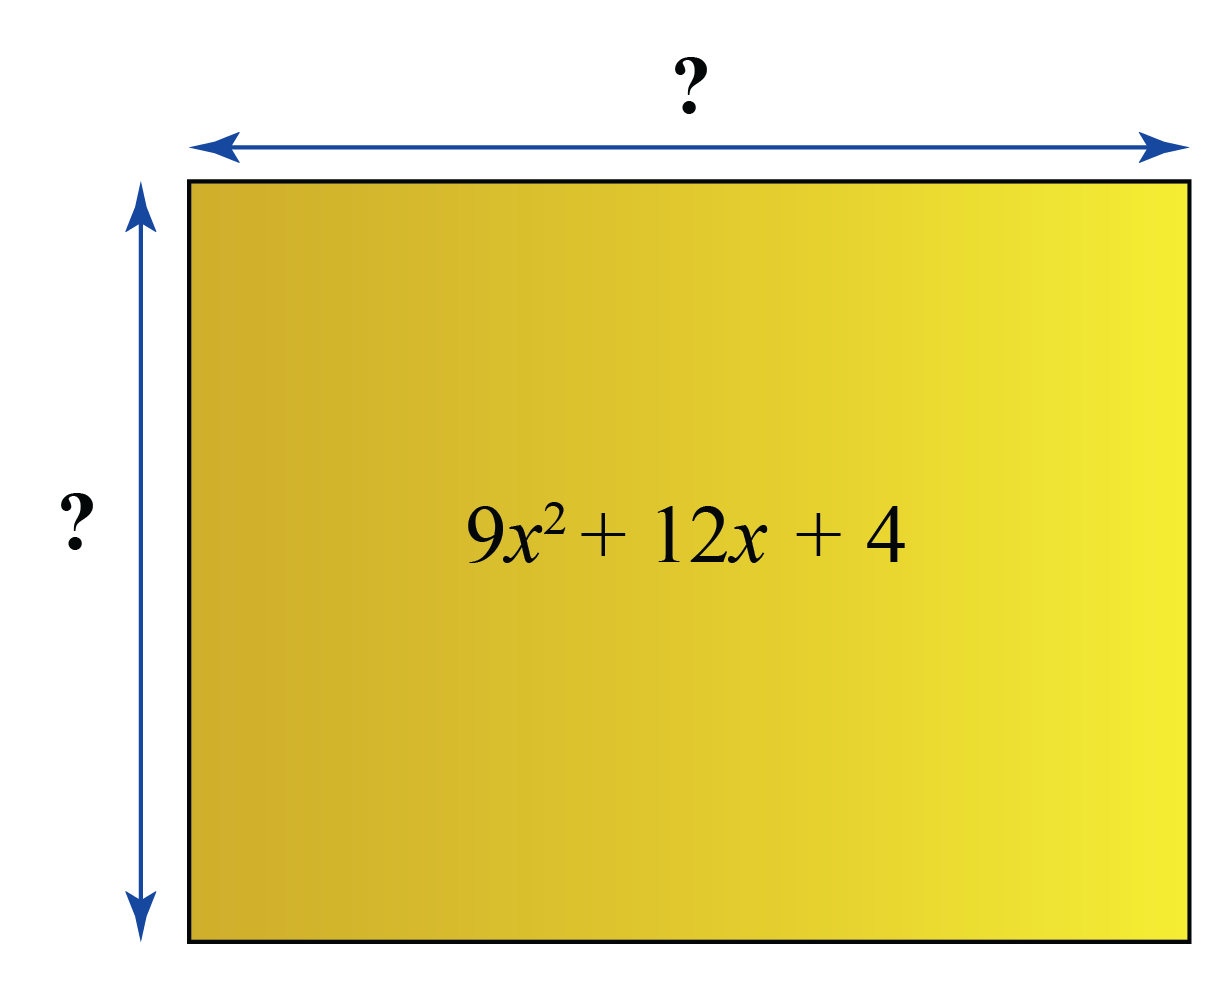 Find the side of the square whose area is  9 x square plus 12 x plus 4.